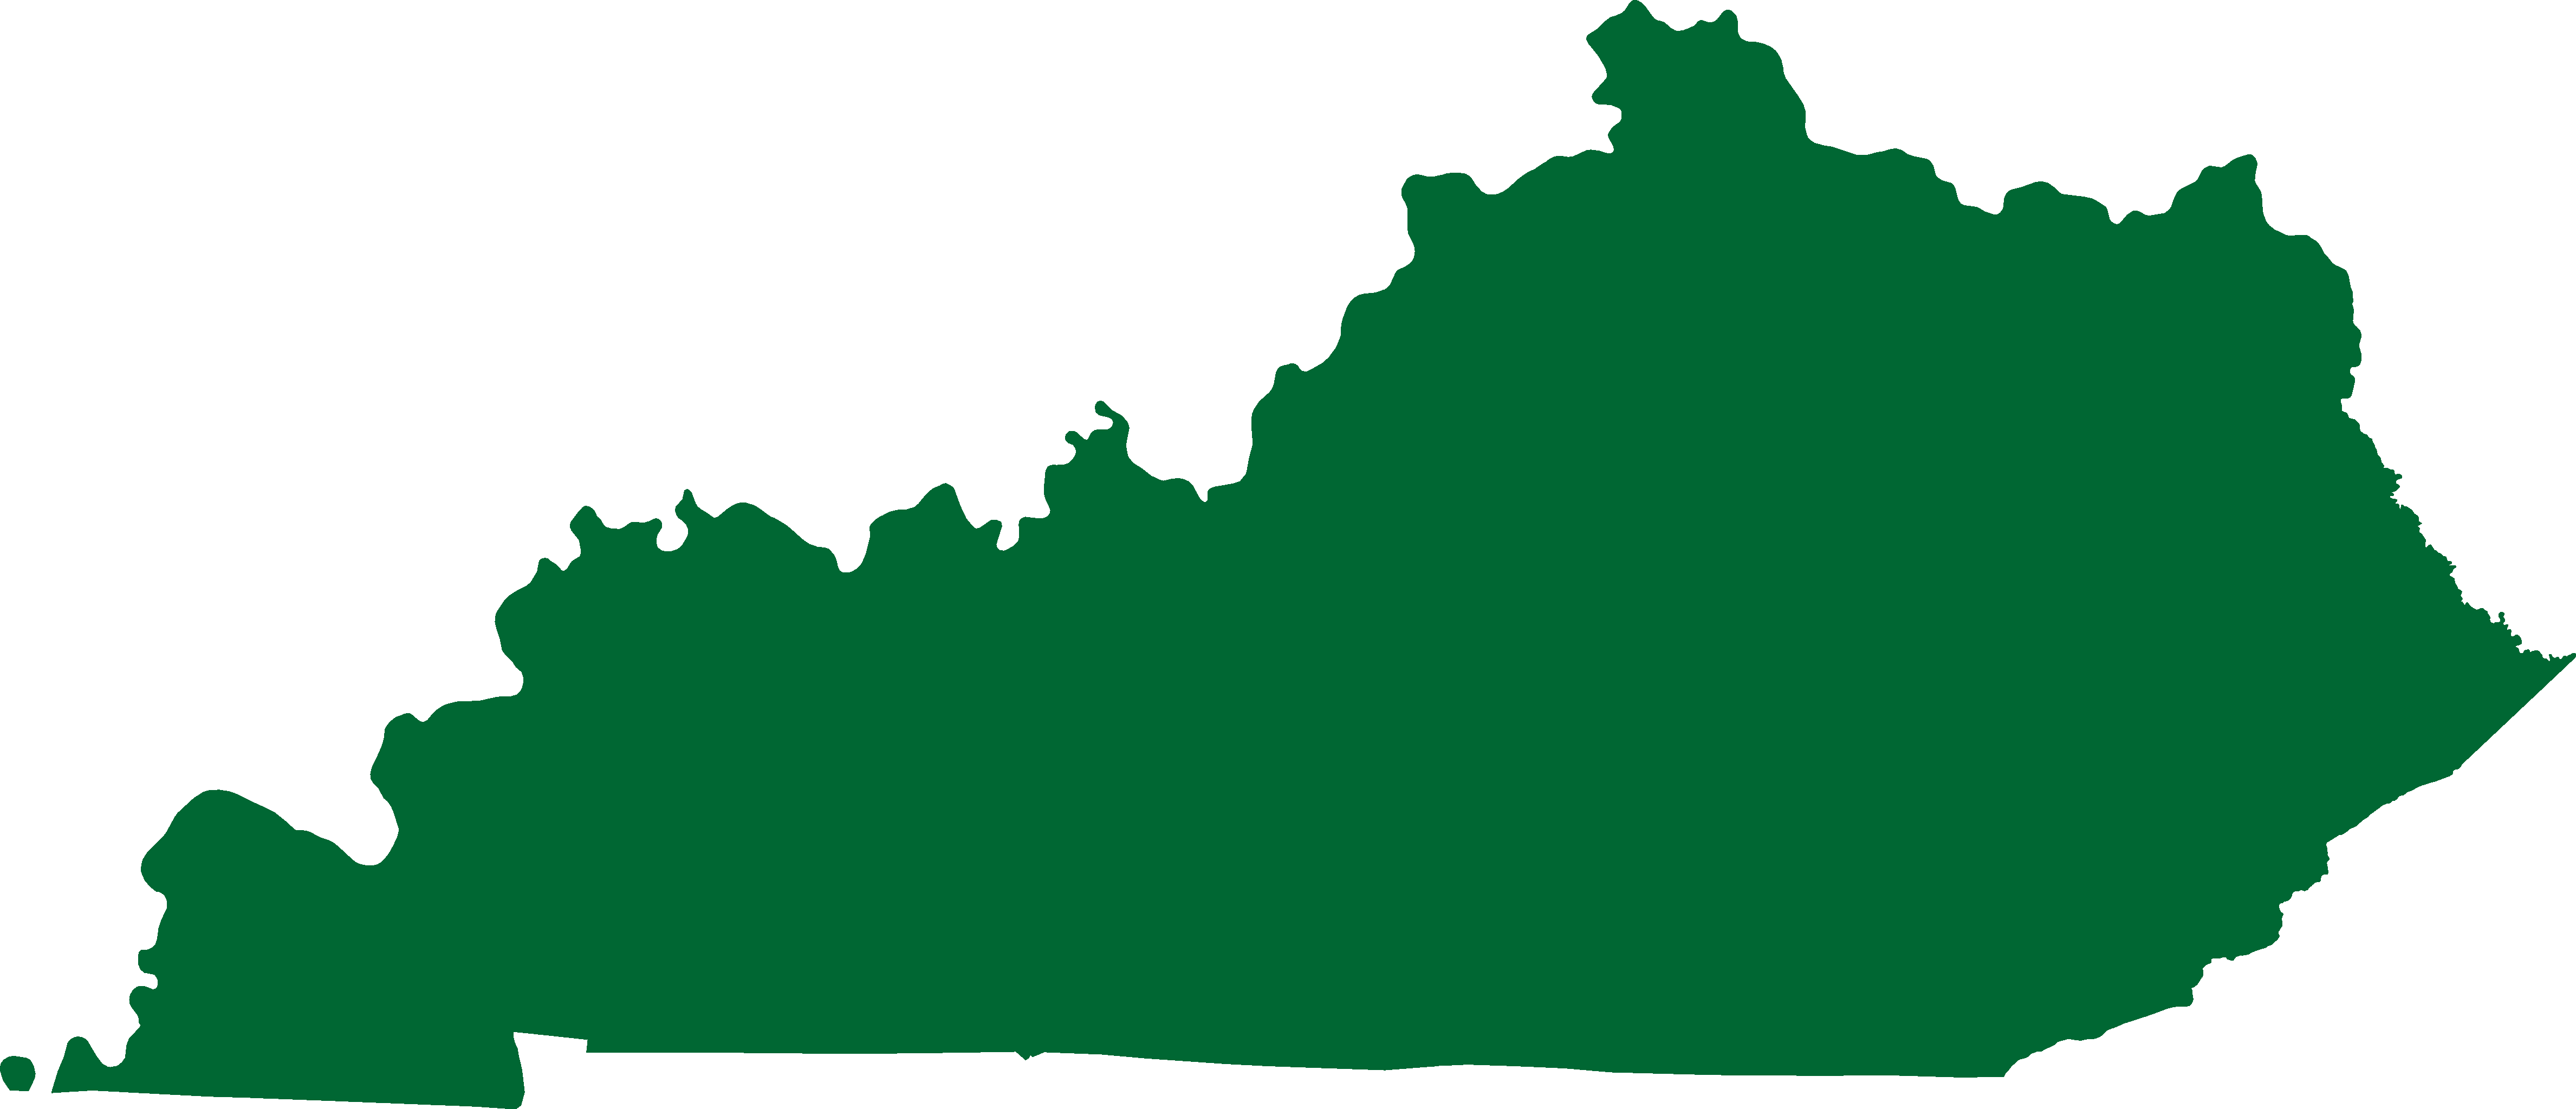 Mental Health Resources in Kentucky